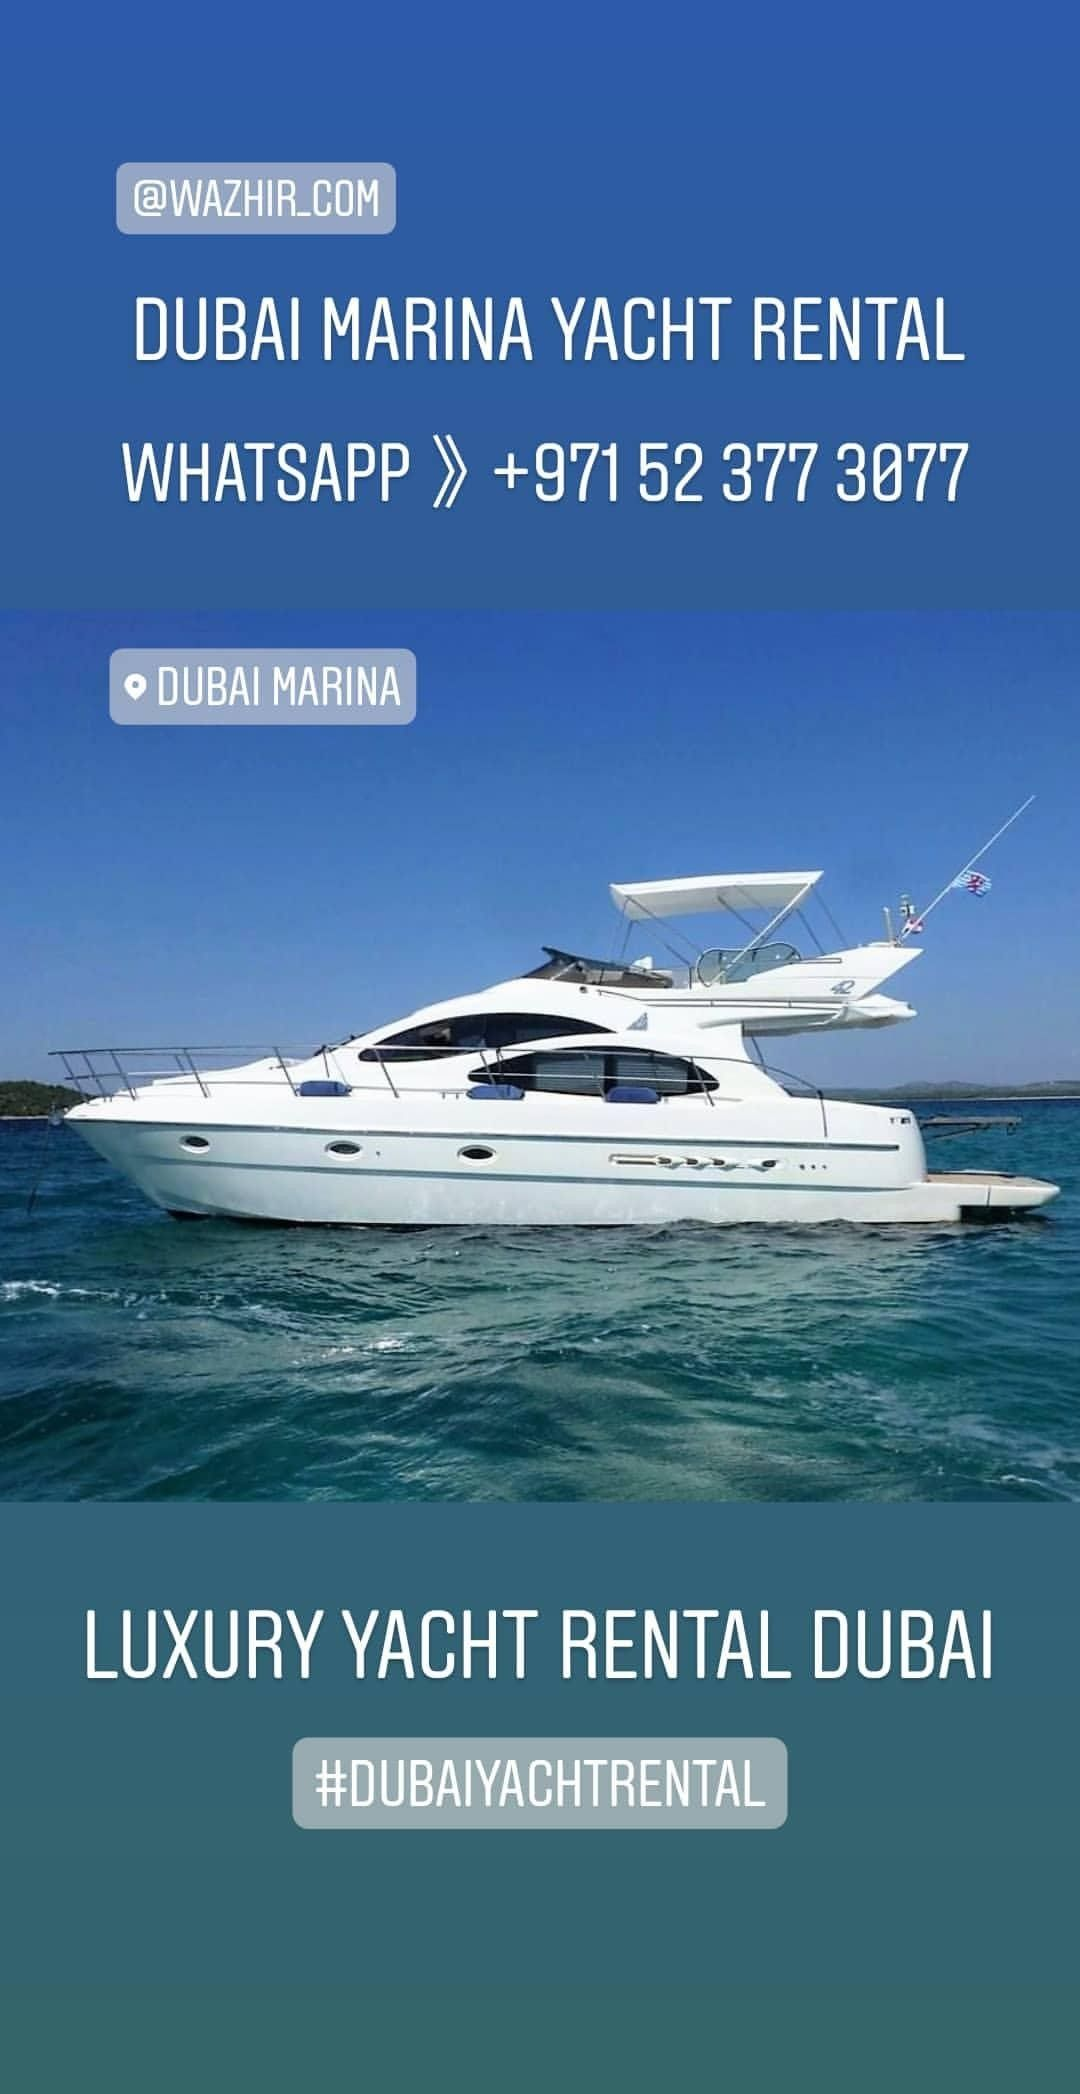 Luxury Yacht Rental Dubai Marina in 2020 Luxury yachts